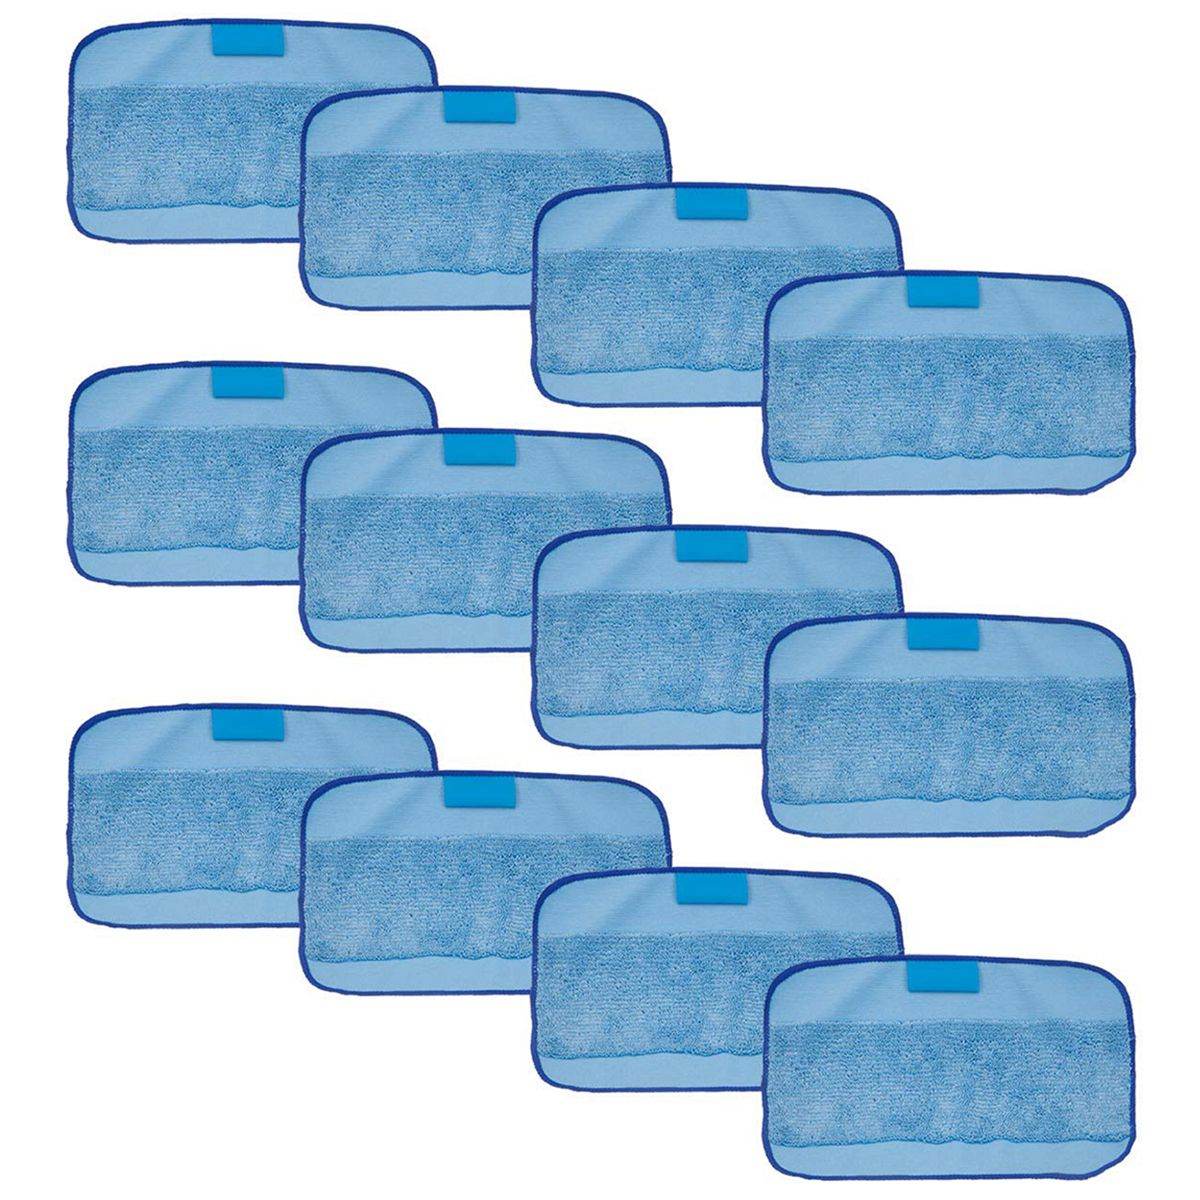 12Pcs Wet Cloths for Braava Replacement Washable Pro Mopping Cloths for iRobot Braava vacuum cleaner 380t 320 Mint 4200 5200 12pcs wet cloths for braava replacement washable pro mopping cloths for irobot braava vacuum cleaner 380t 320 mint 4200 5200